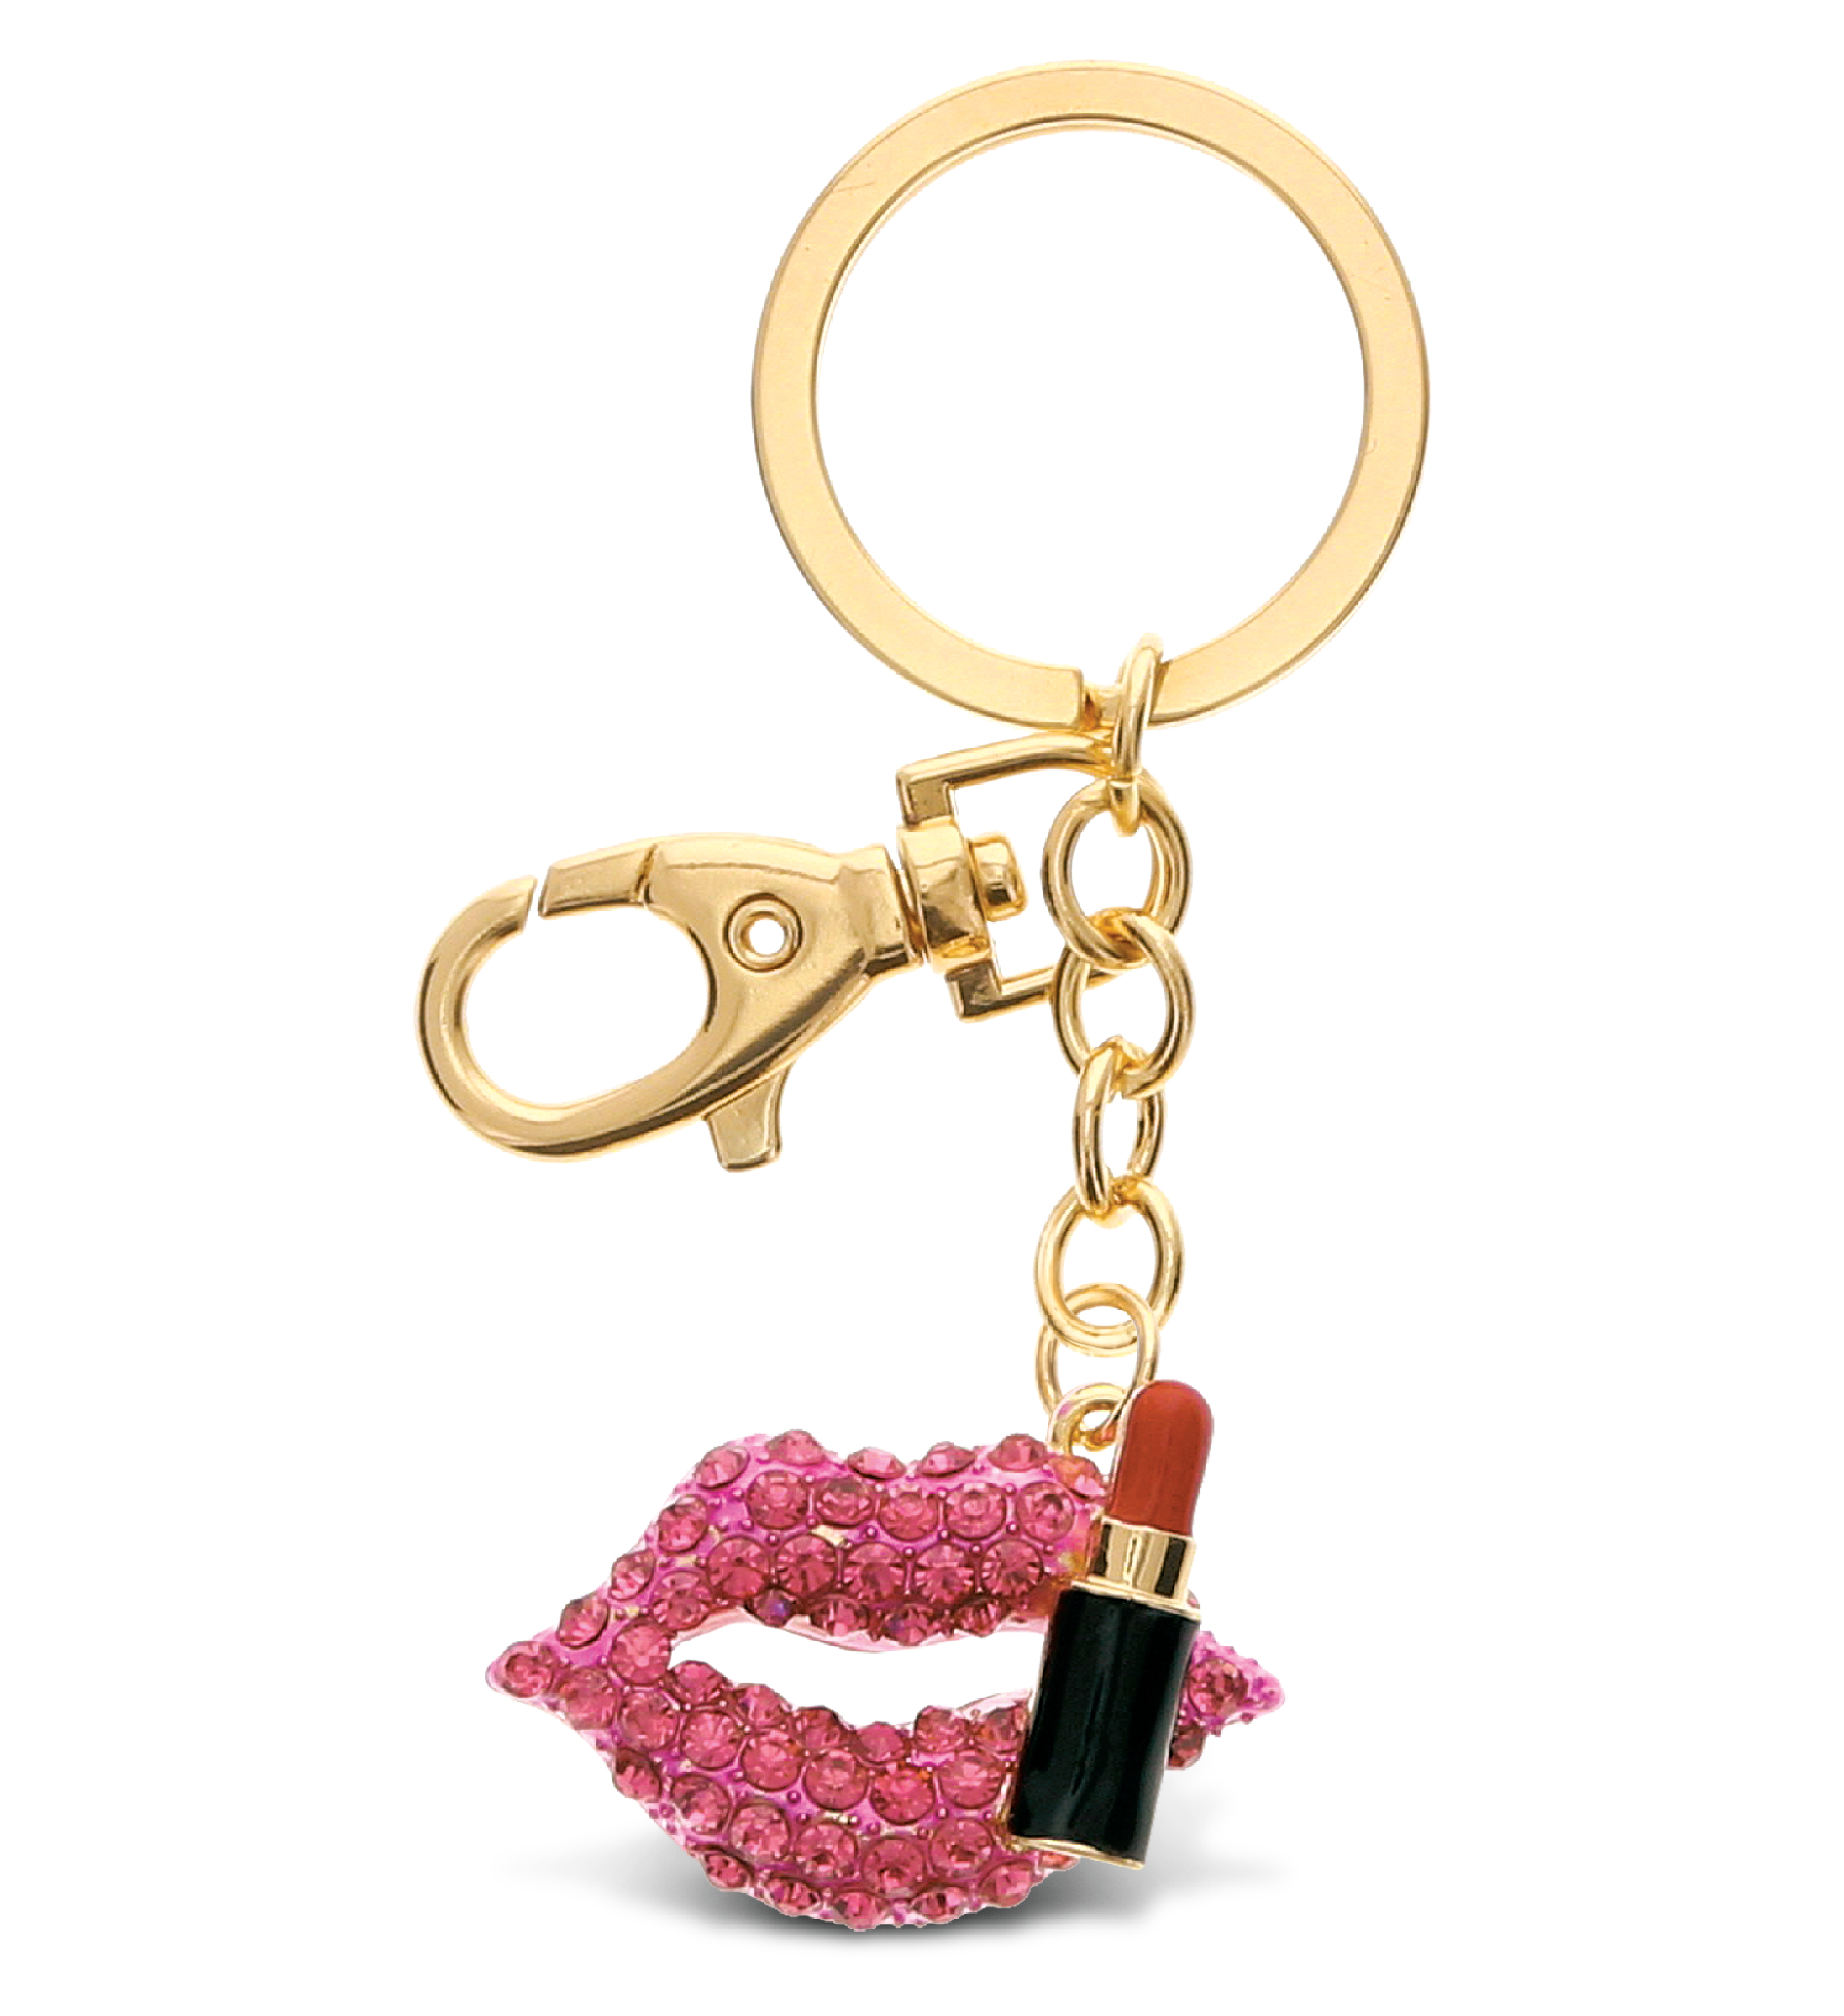 ''The Gold sparkling Pink Lips and Red LIPSTICK charm is part of our unique and elegant collection of